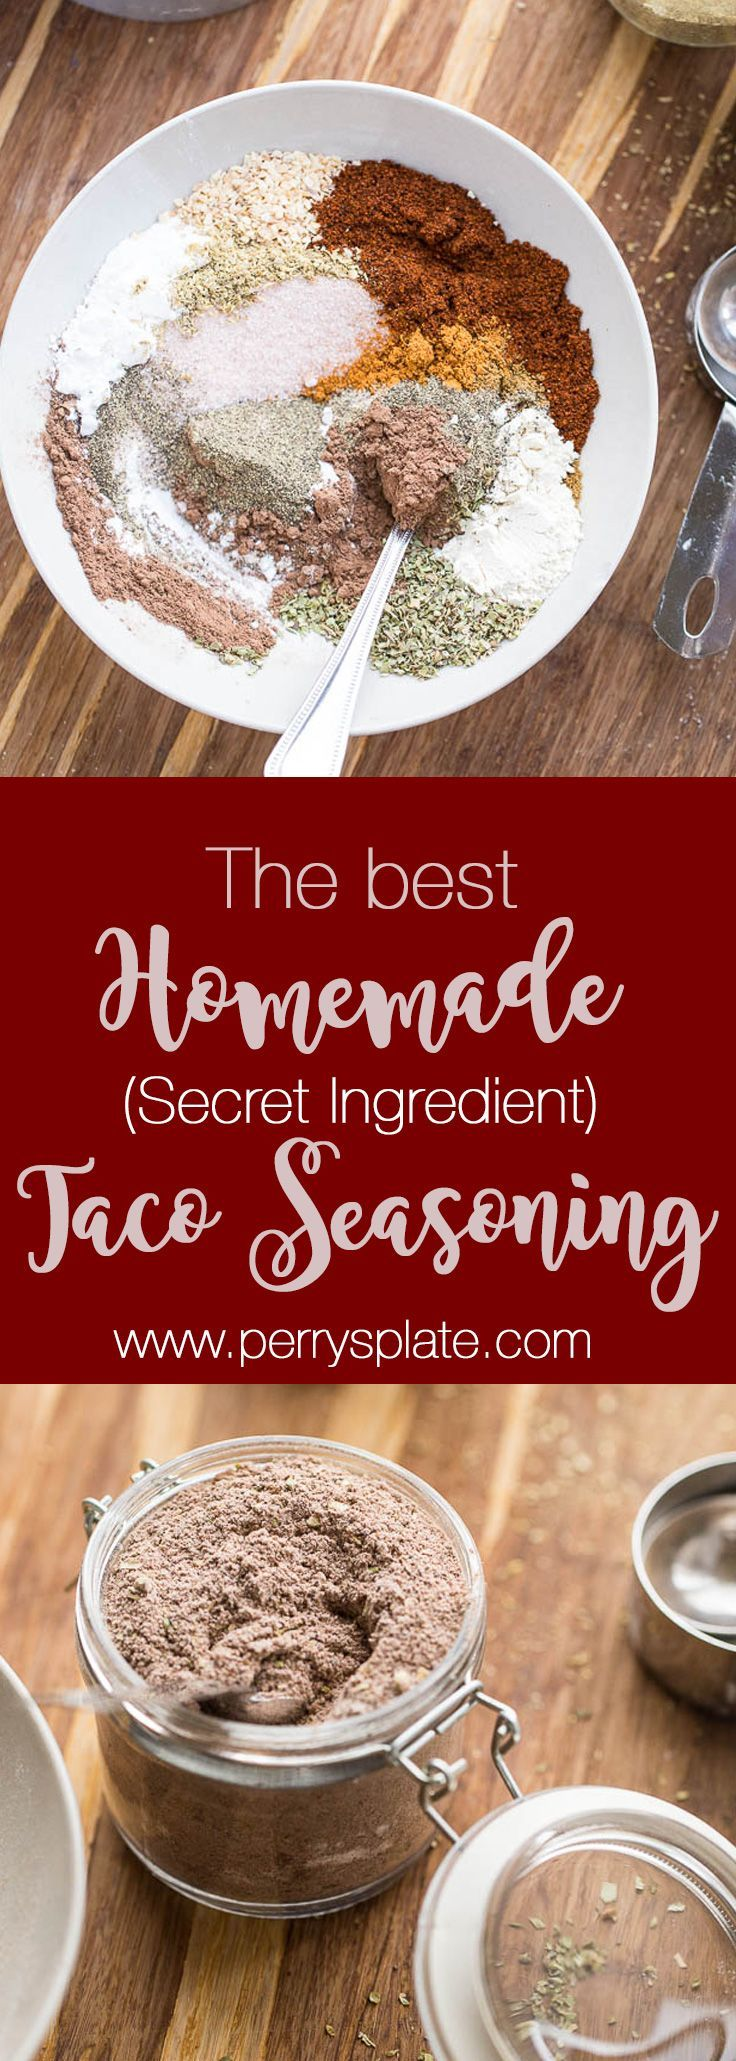 Homemade Taco Seasoning so good you'll give it away as a gift! | paleo recipes | whole30 recipes | taco recipes | perrysplate.com #diytacoseasoning